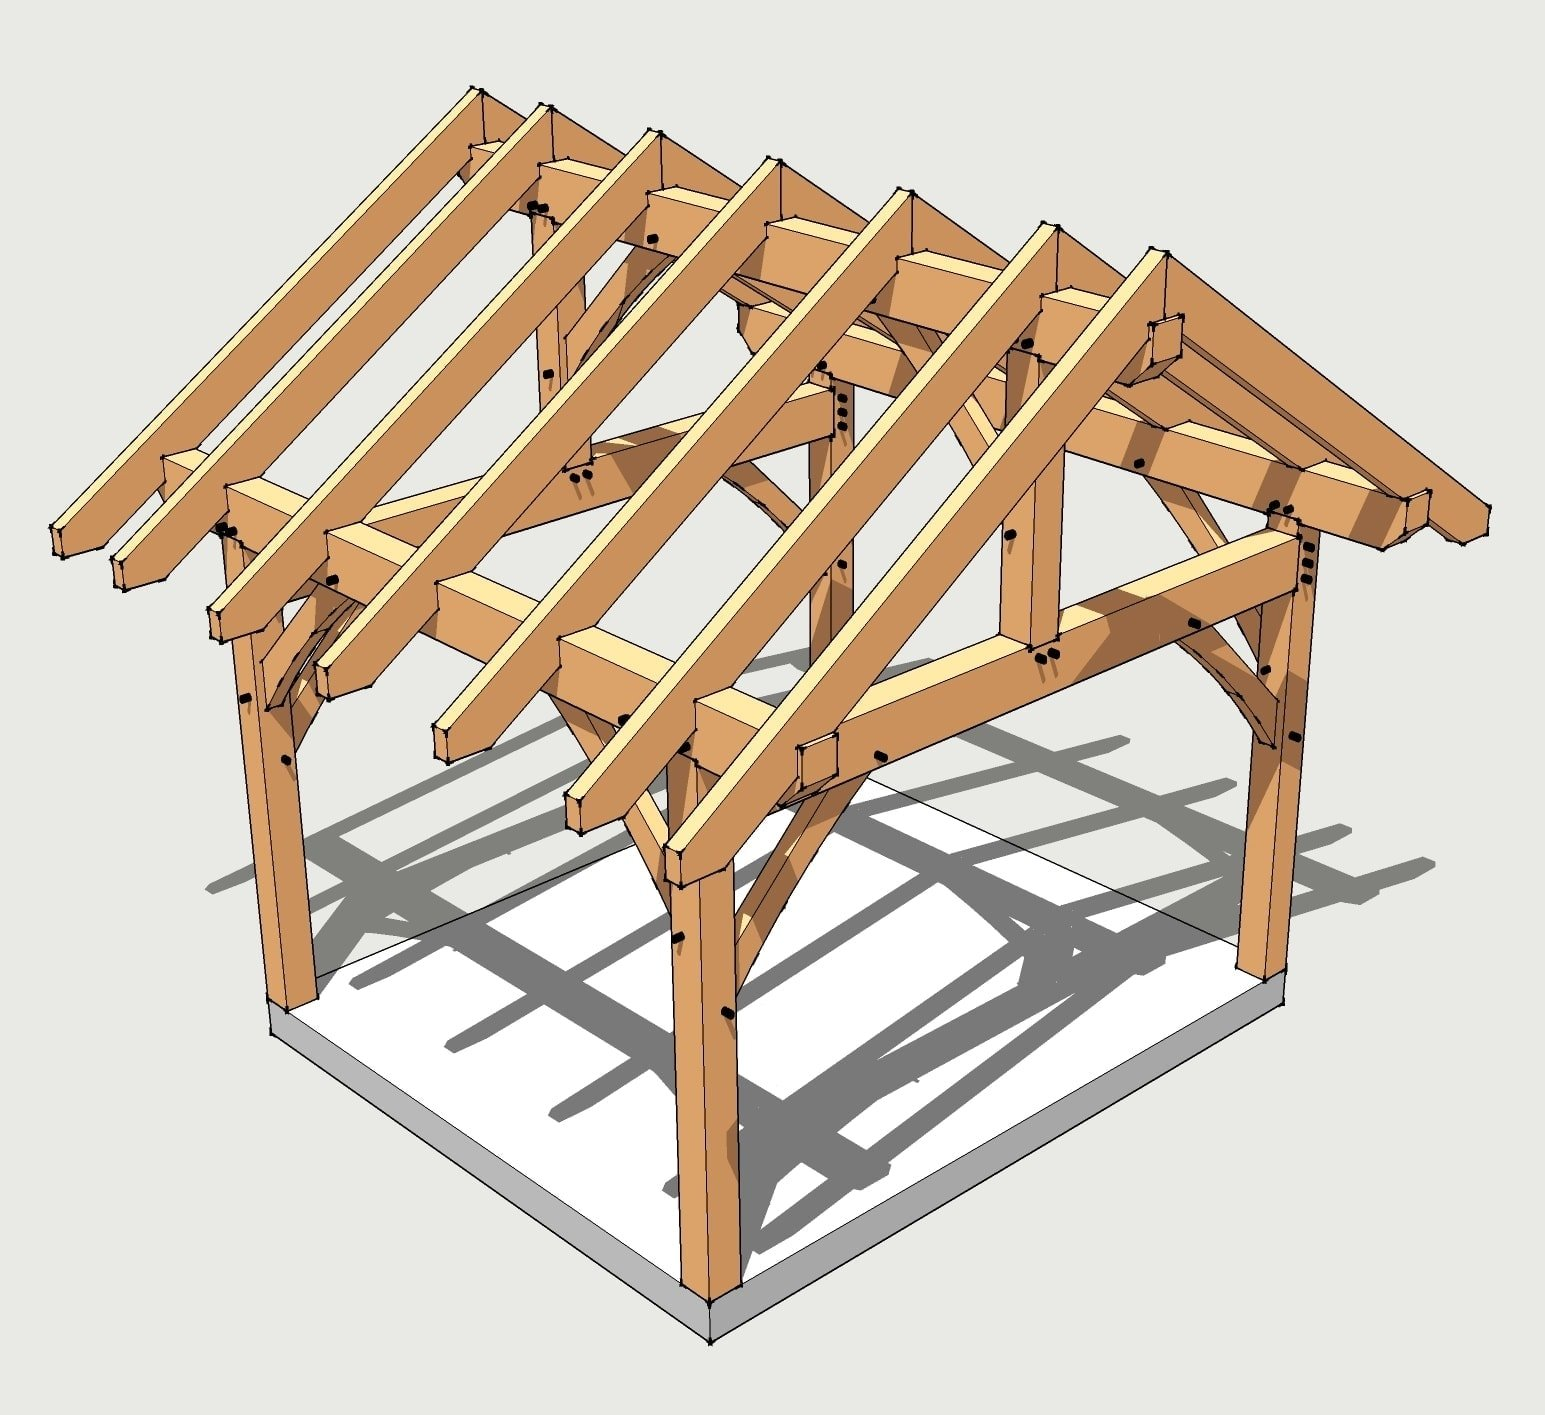 12x14 timber frame plan timber frame hq for Timber frame home plans for sale